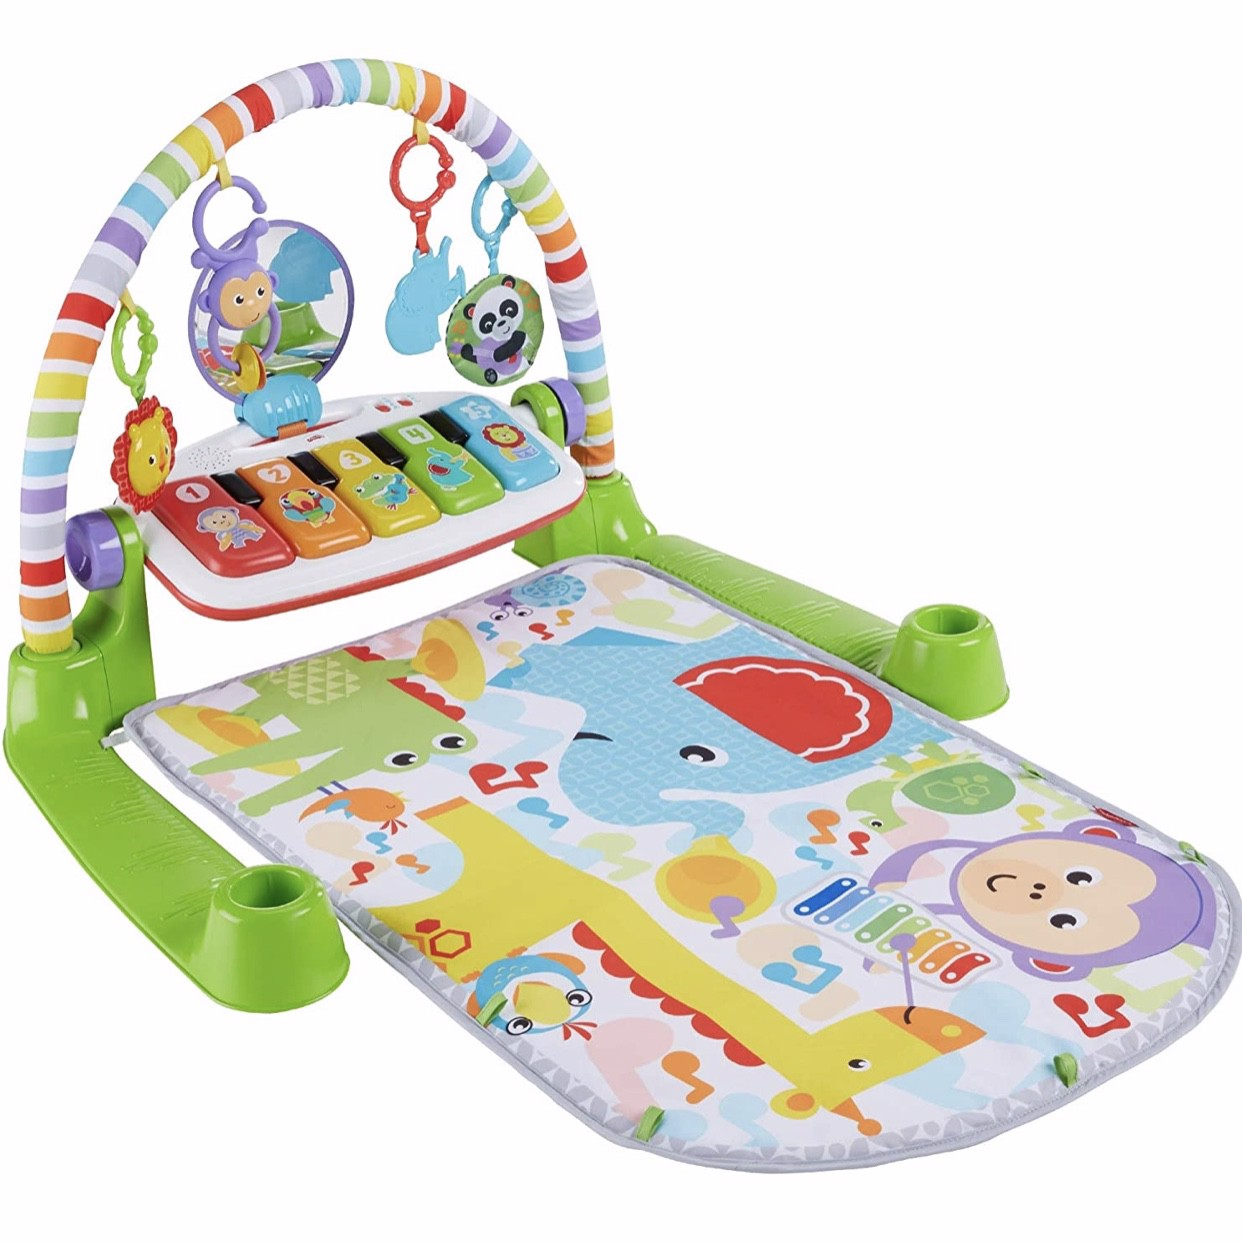 Đồ chơi cho bé Fisher-Price Deluxe Kick 'n Play Piano Gym